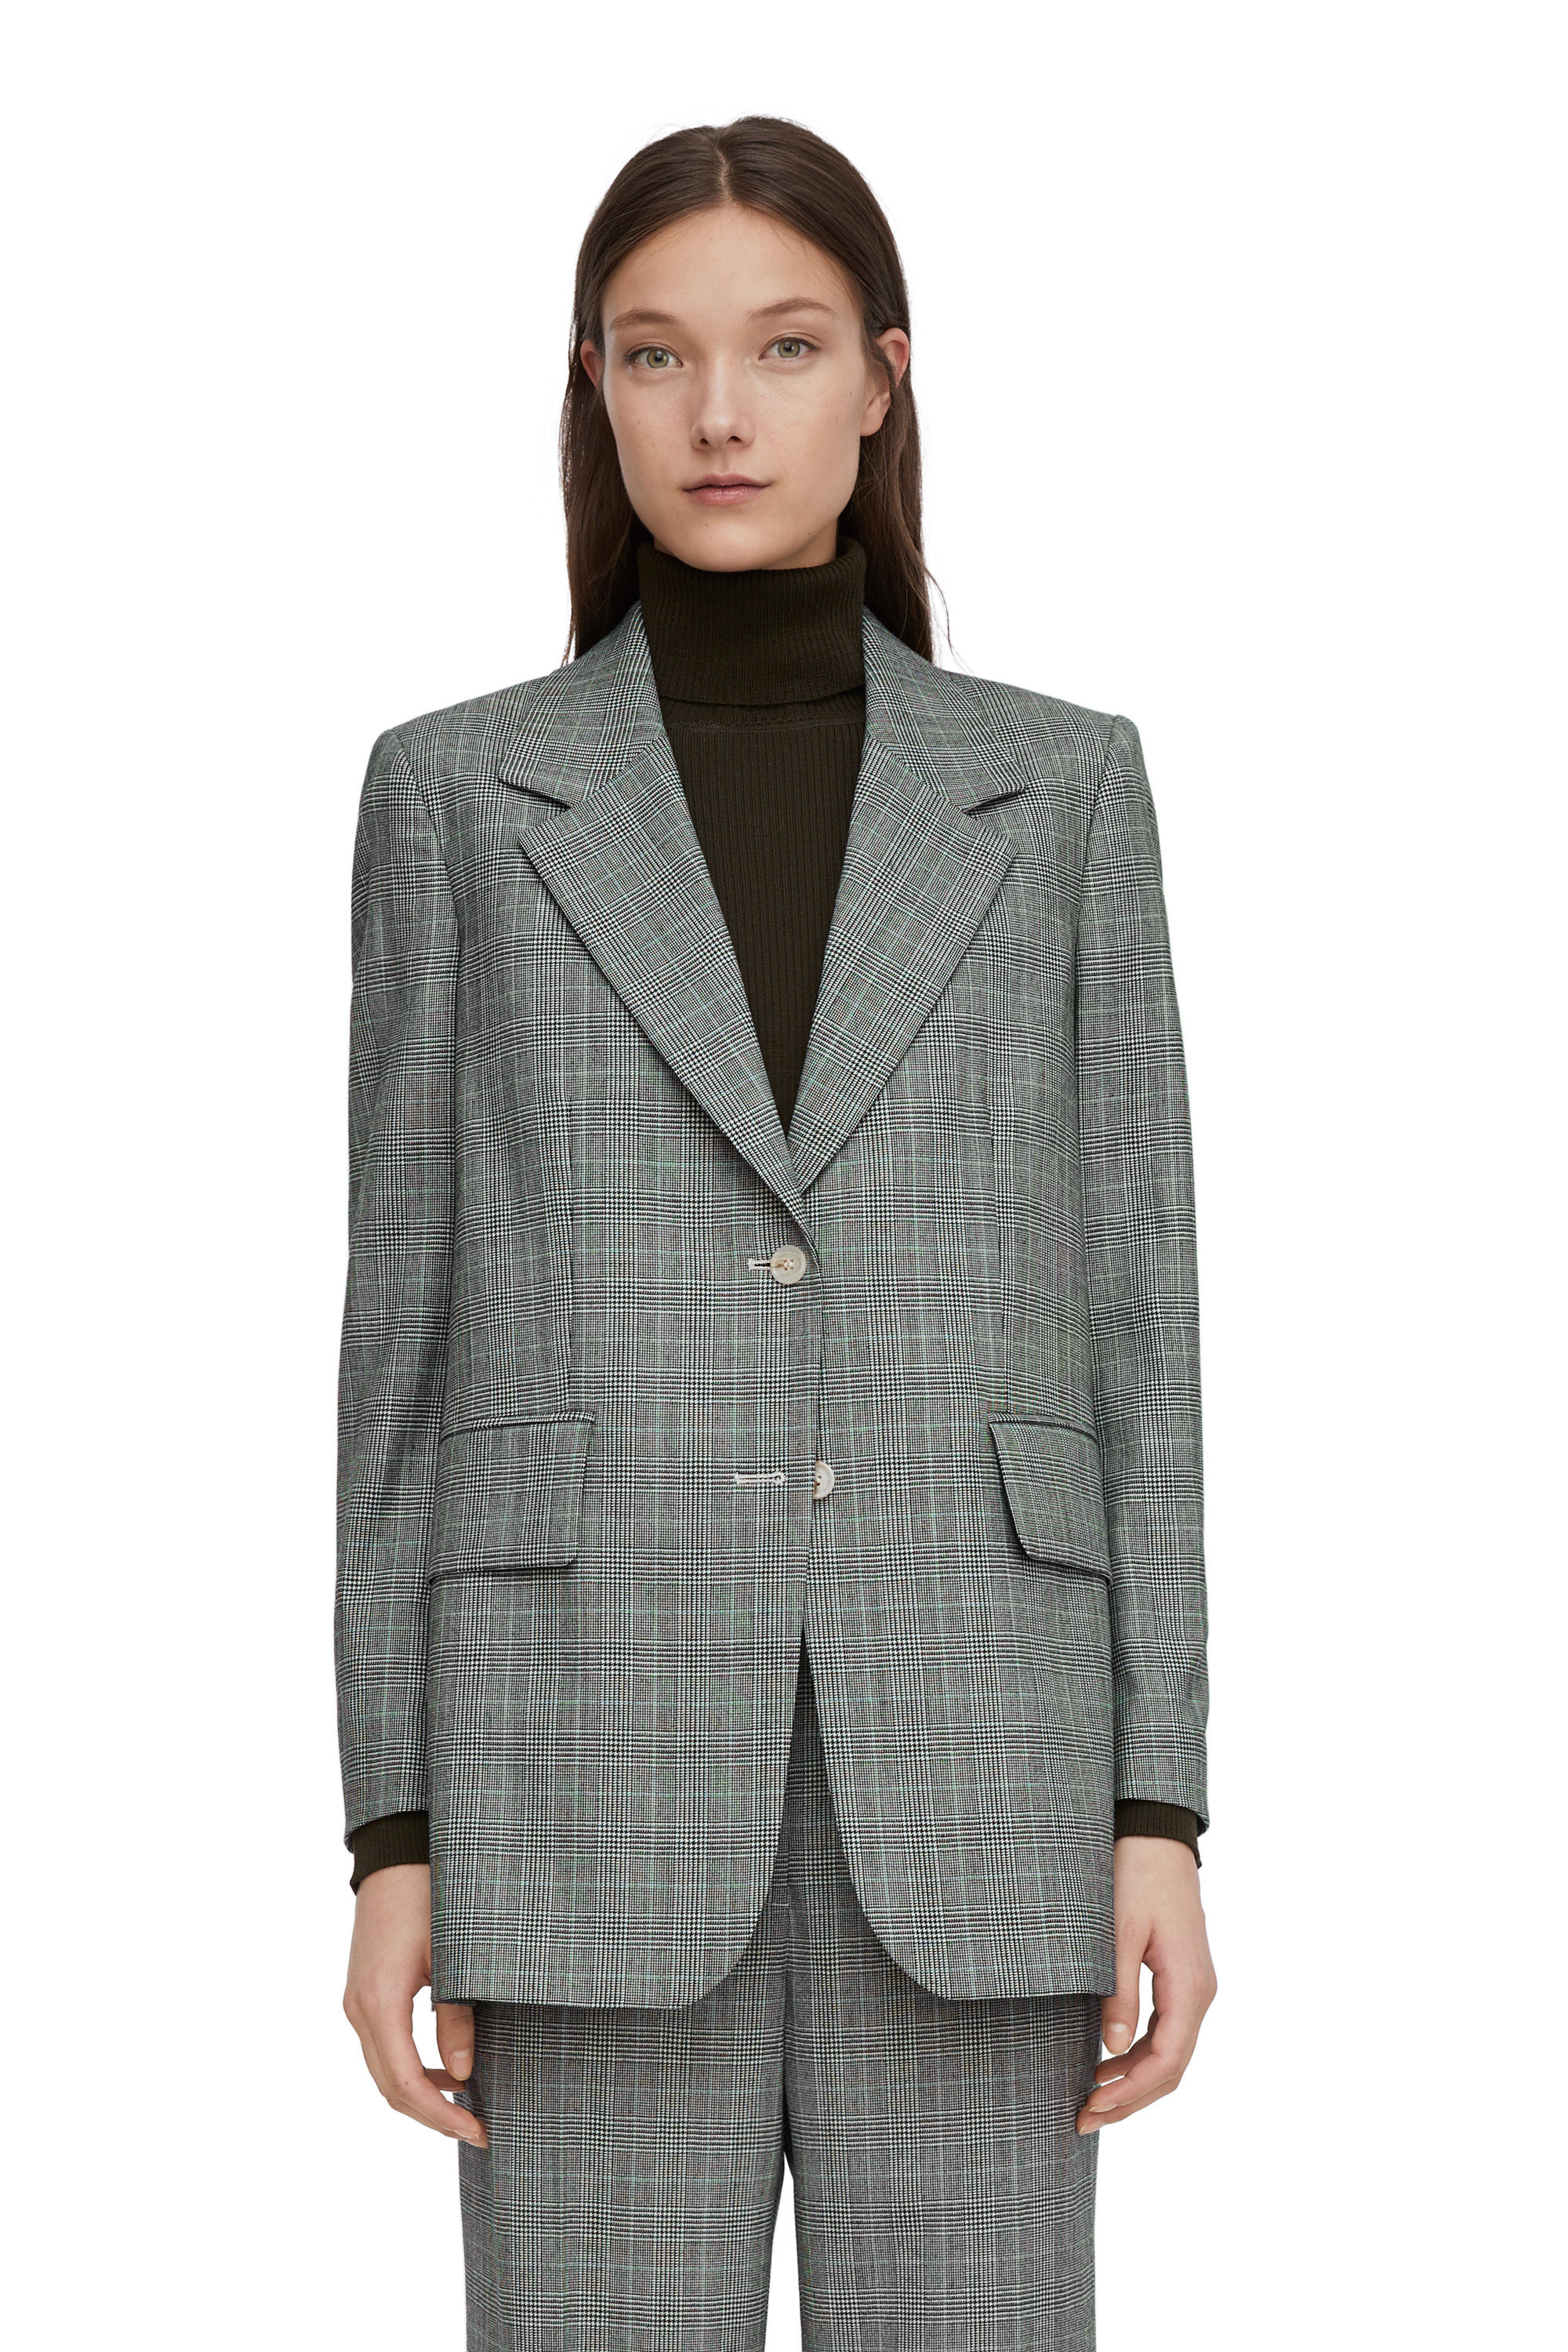 Arket Wool blend checked  suit . ( jacket ) Really good value and its lined. I have had great success with Arket suits so far, well worth trying on- it doesn't photograph as well as it actually is.